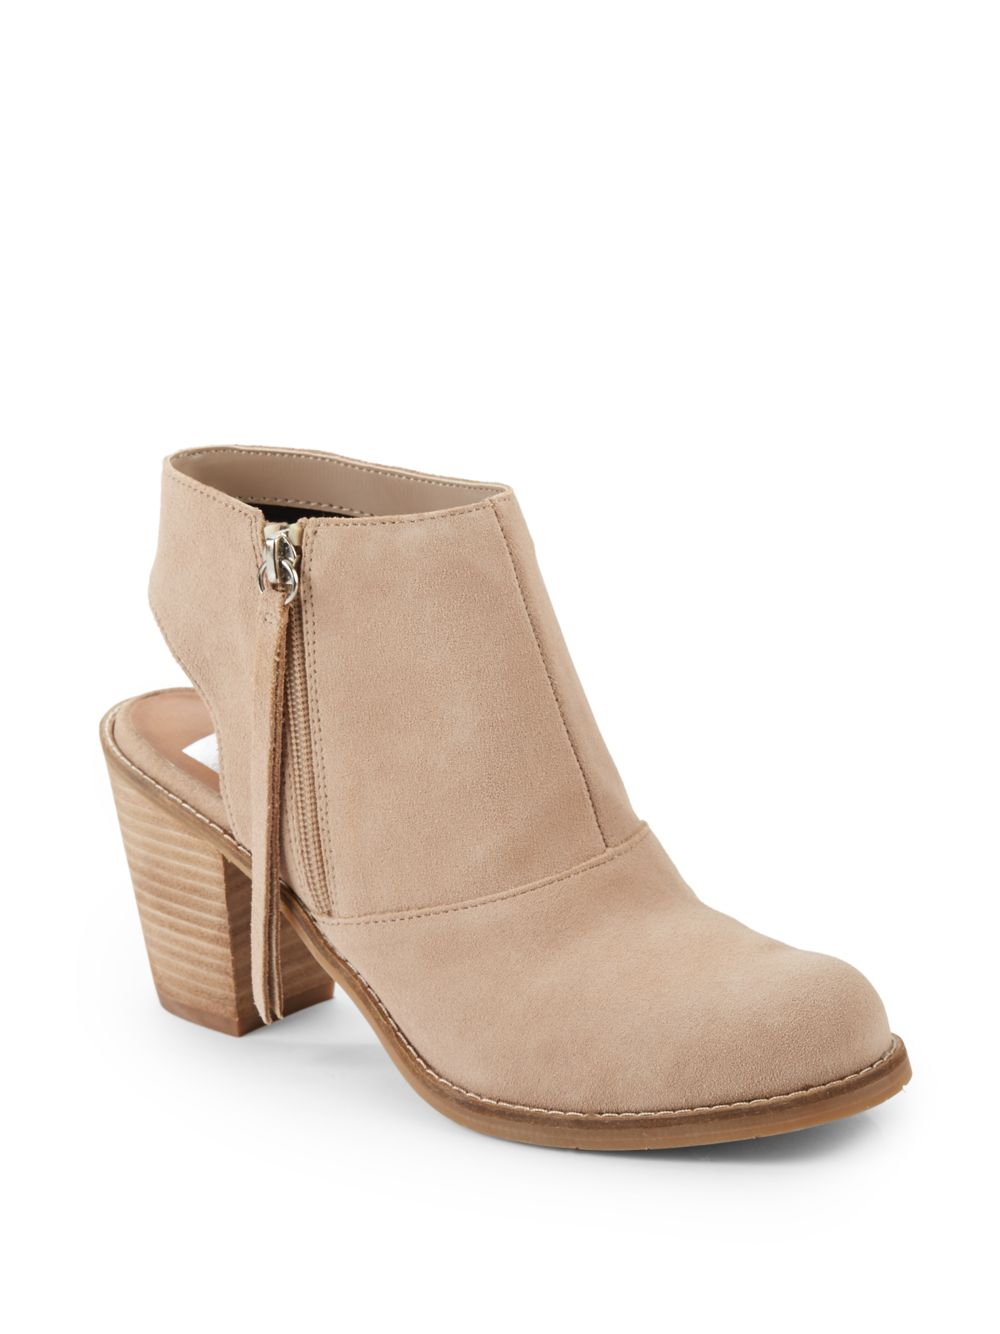 dolce vita jemima cutout suede ankle boots in beige